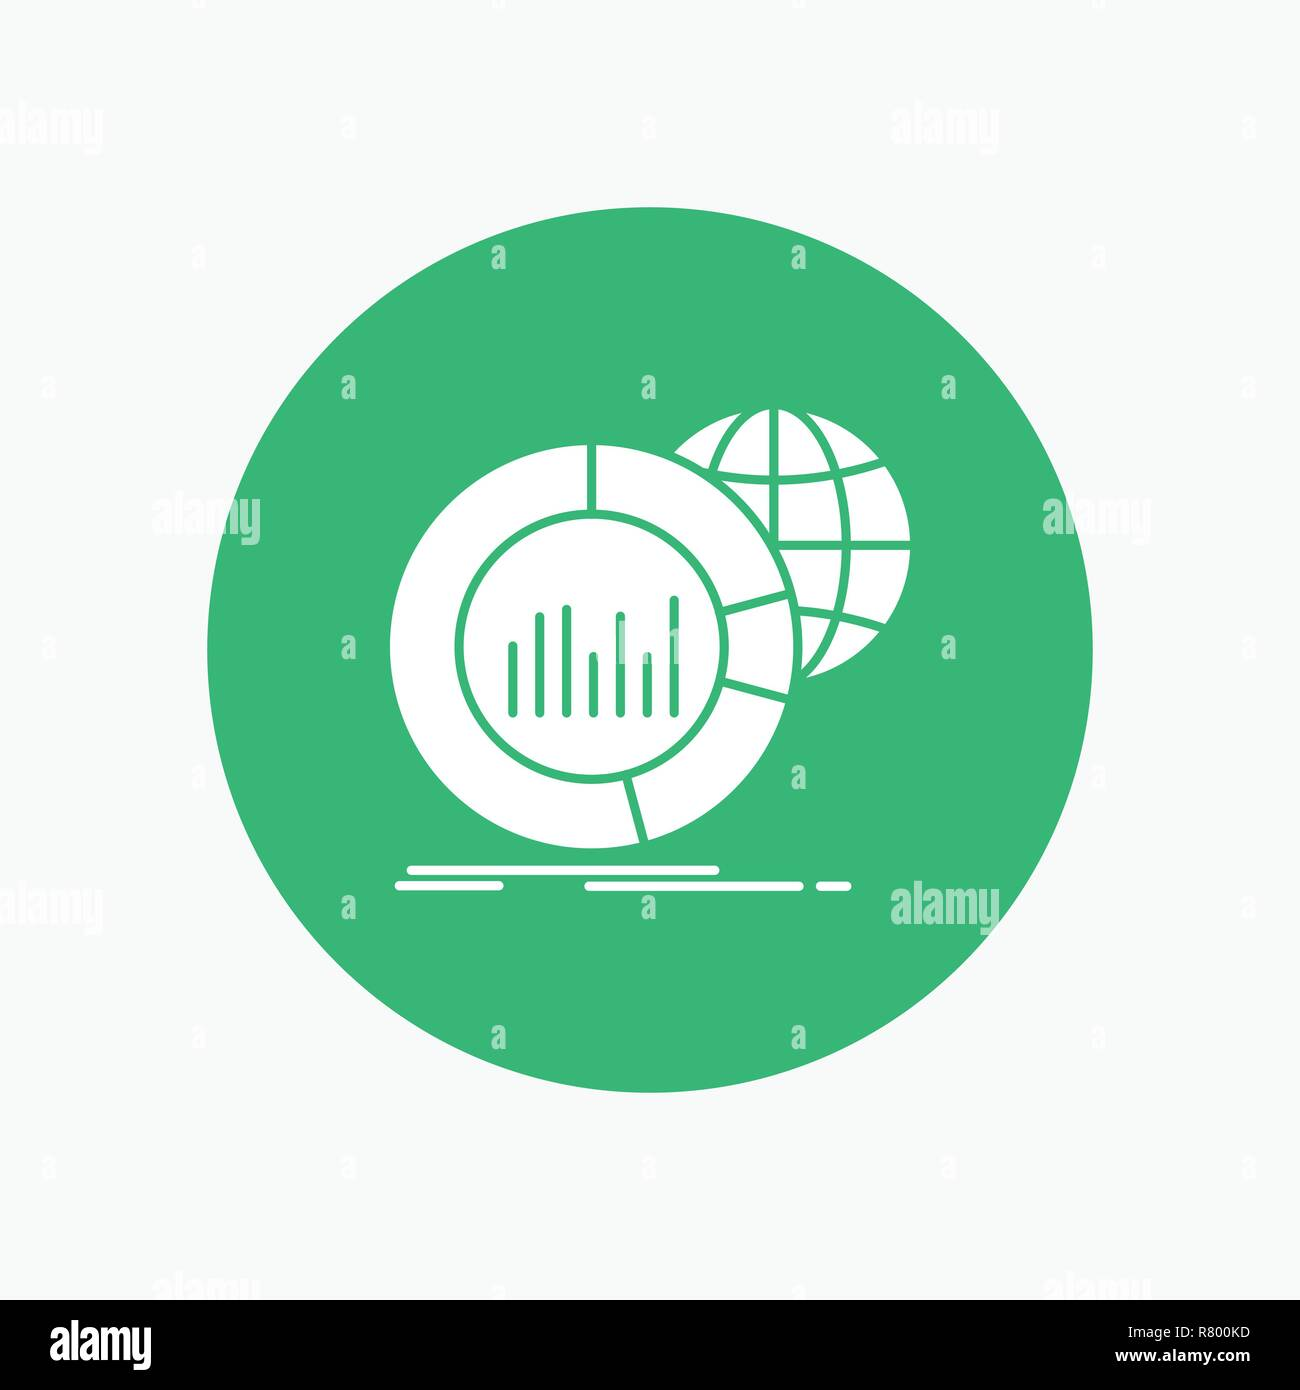 hight resolution of big chart data world infographic white glyph icon in circle vector button illustration